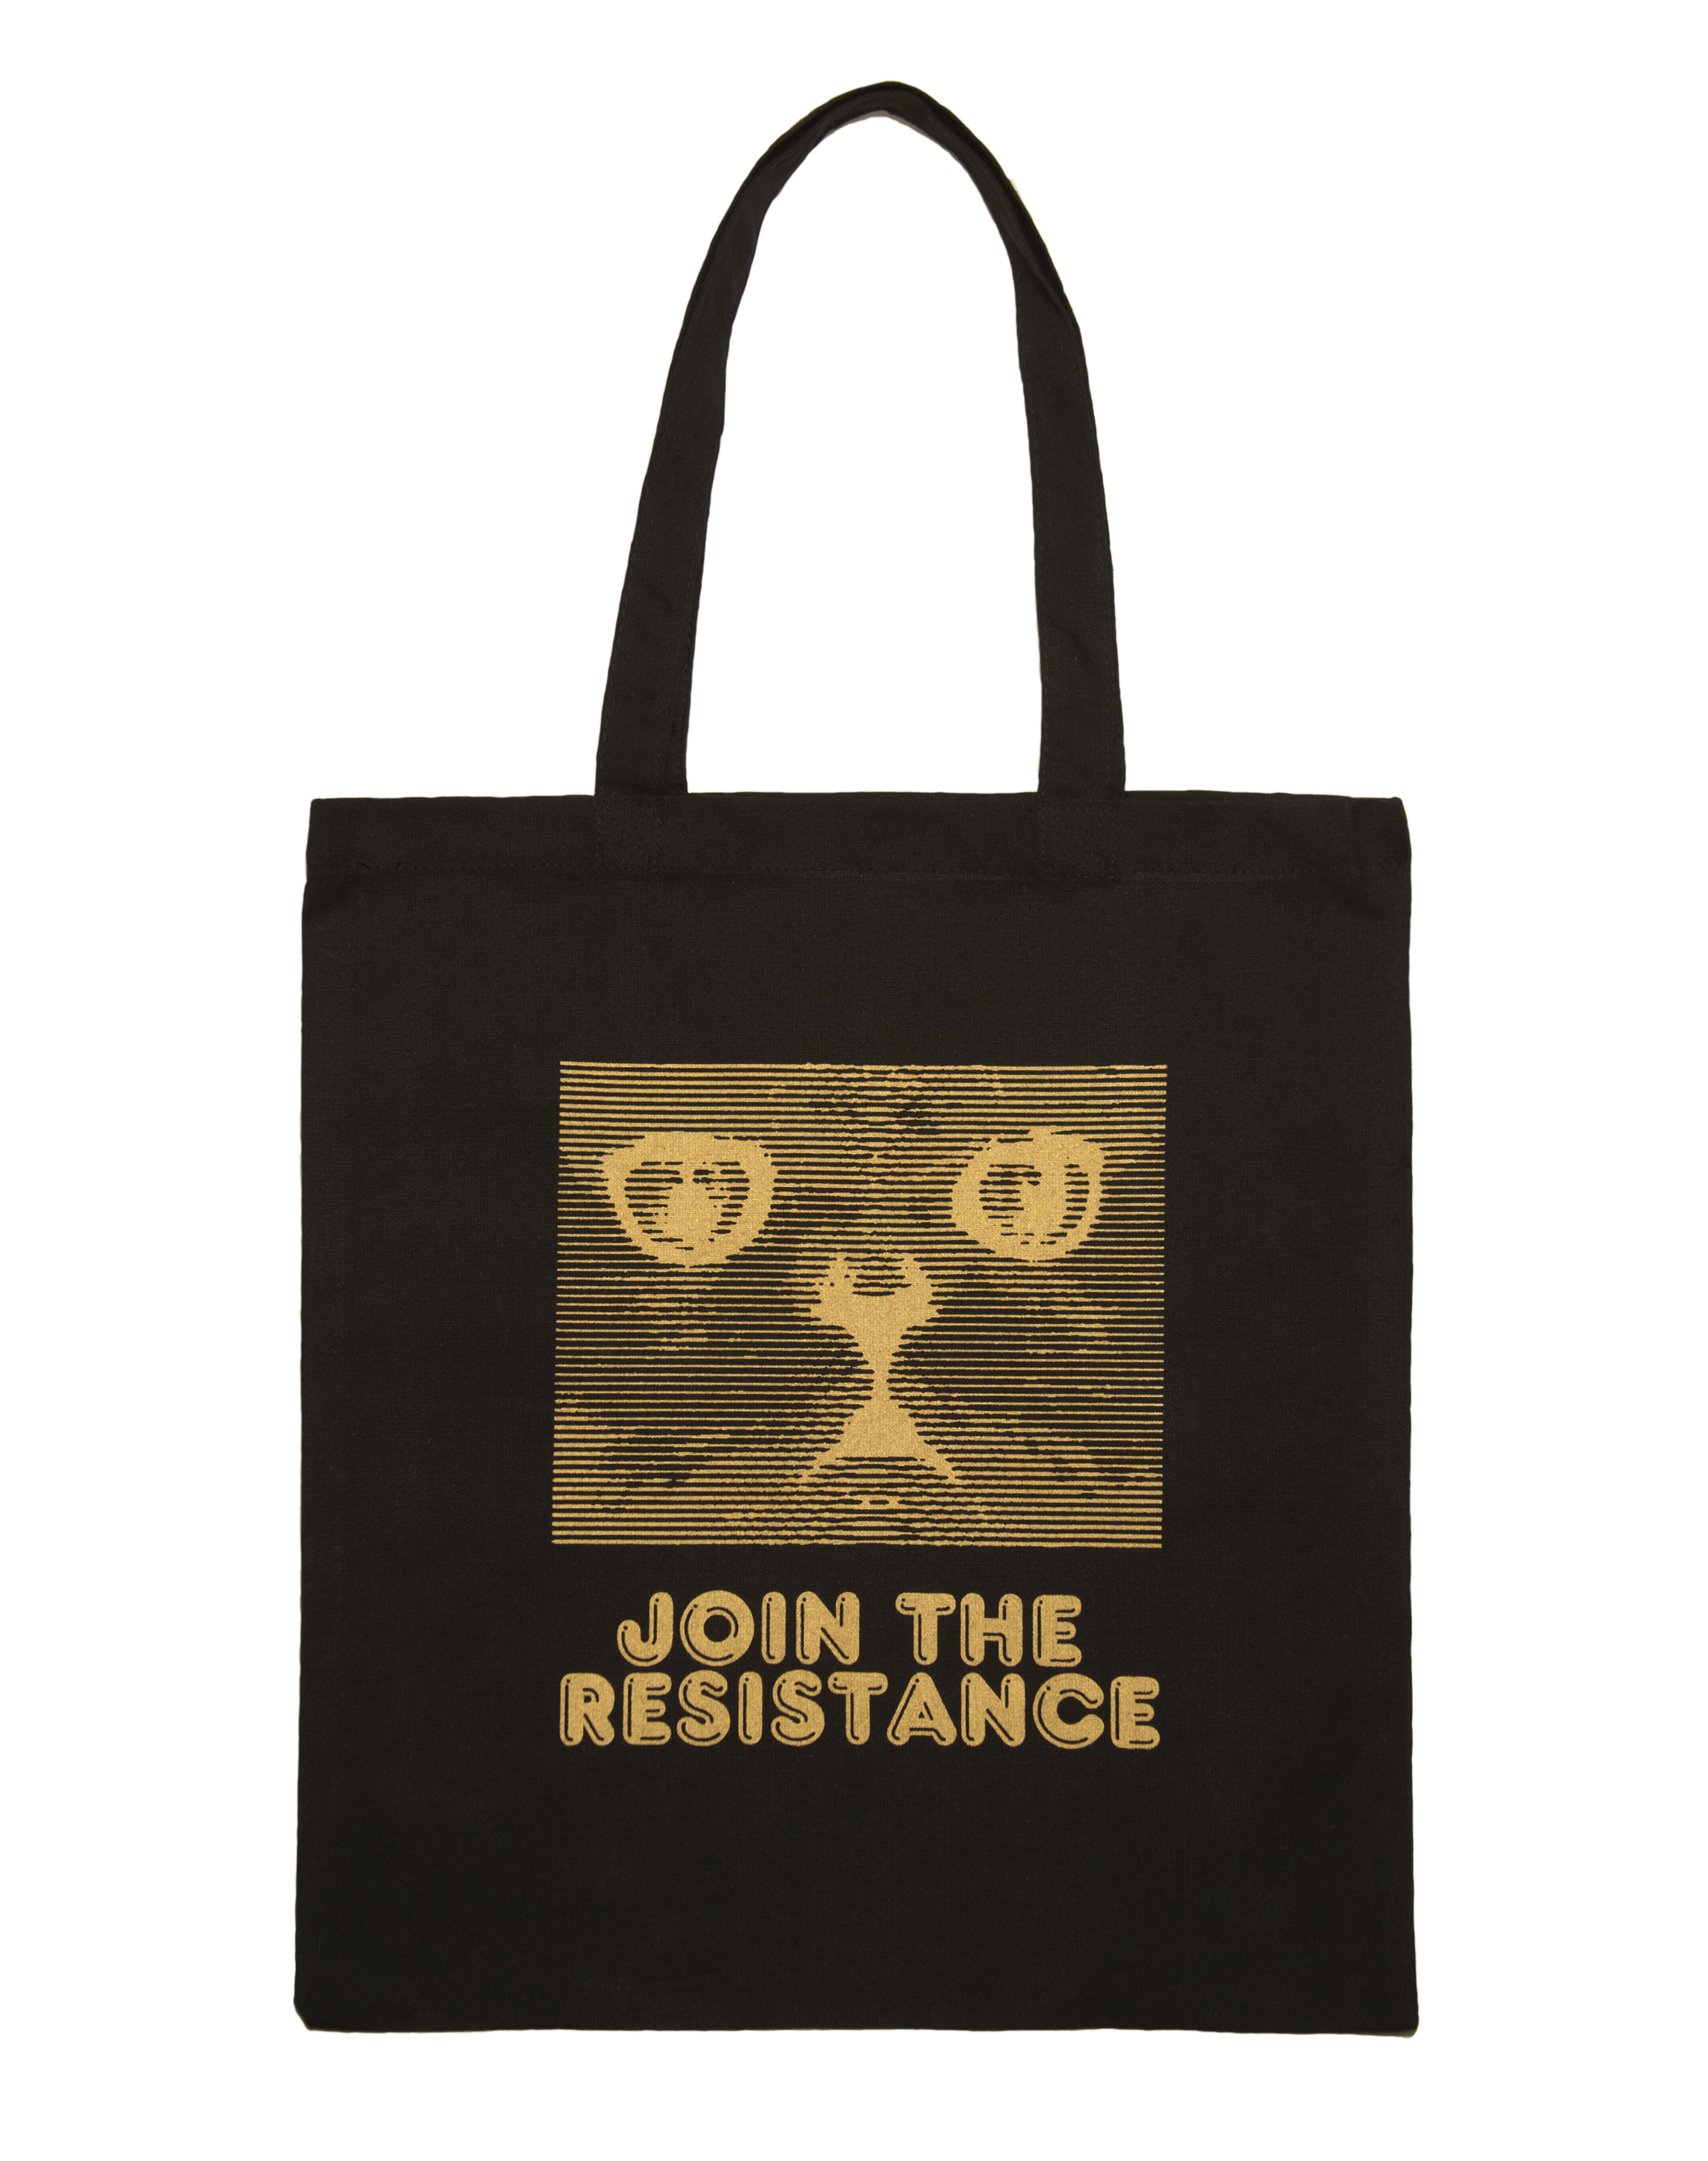 Join The Resistance Tote Black on White - Full Res Proof